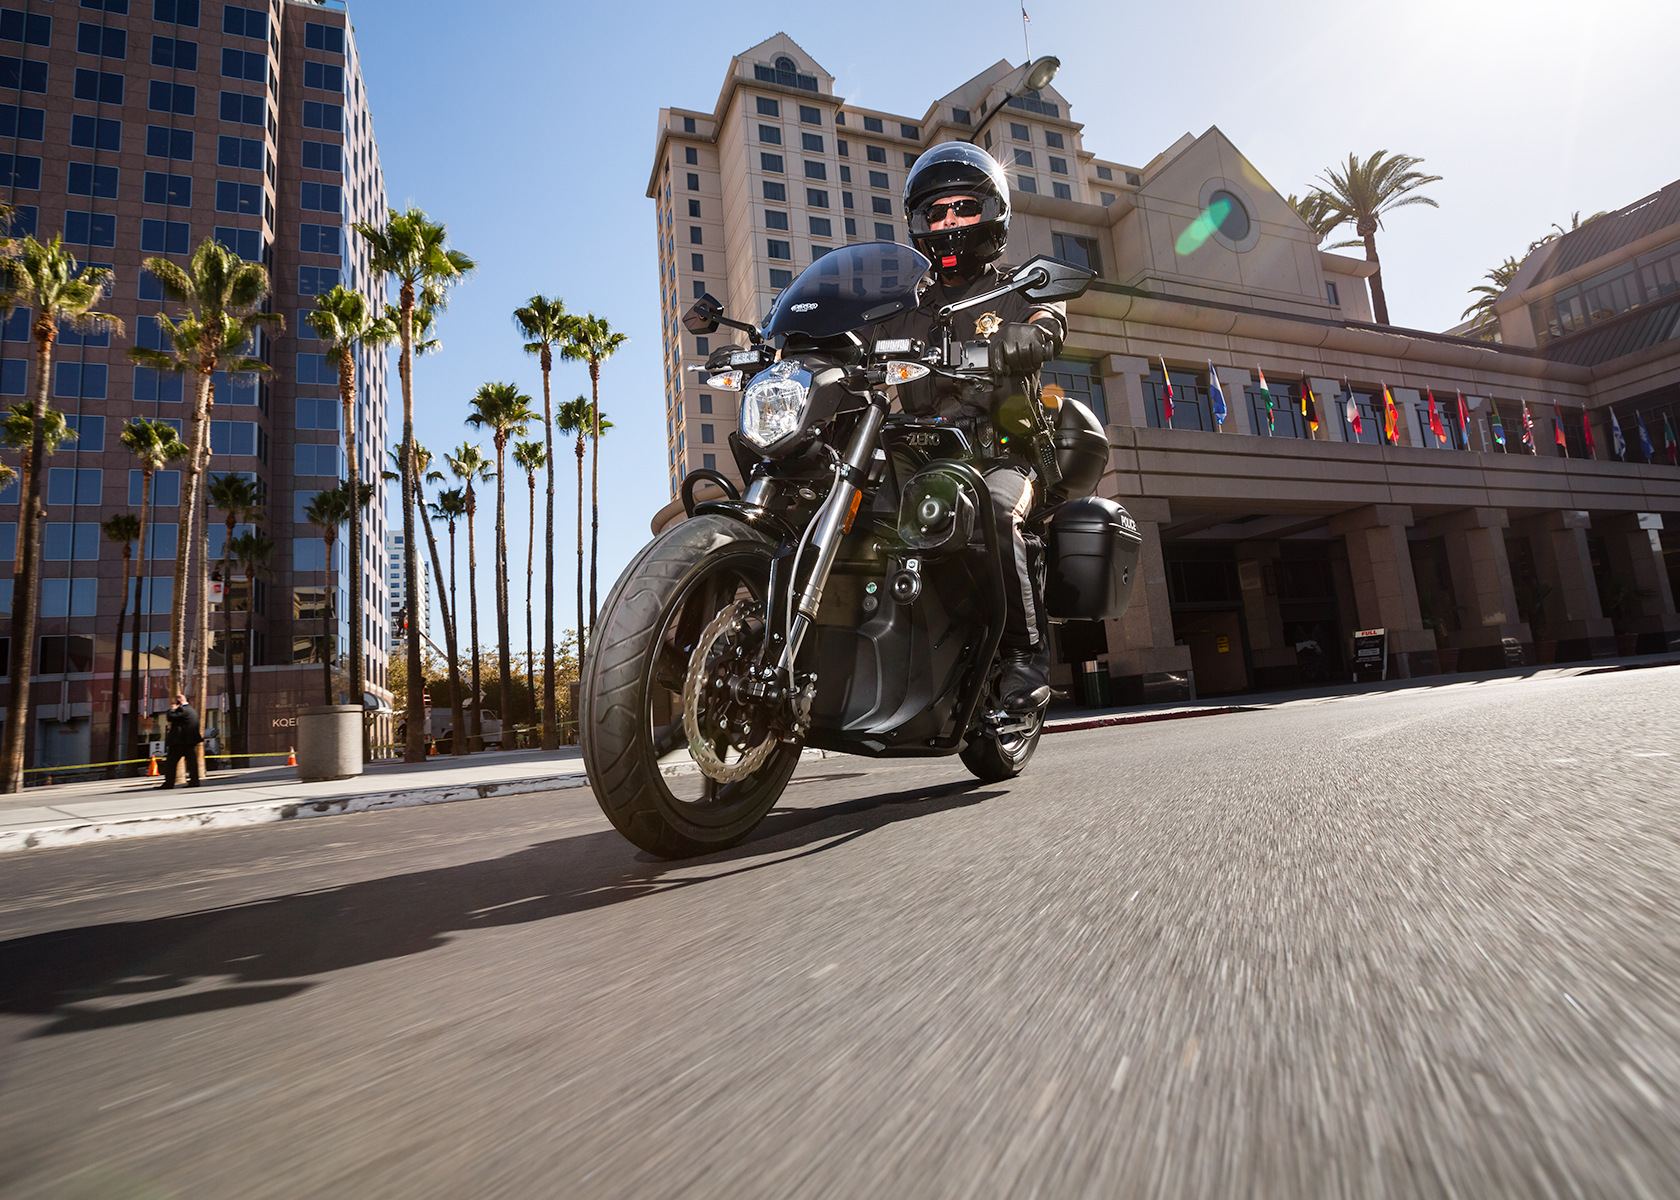 2014 Zero Police Electric Motorcycle: